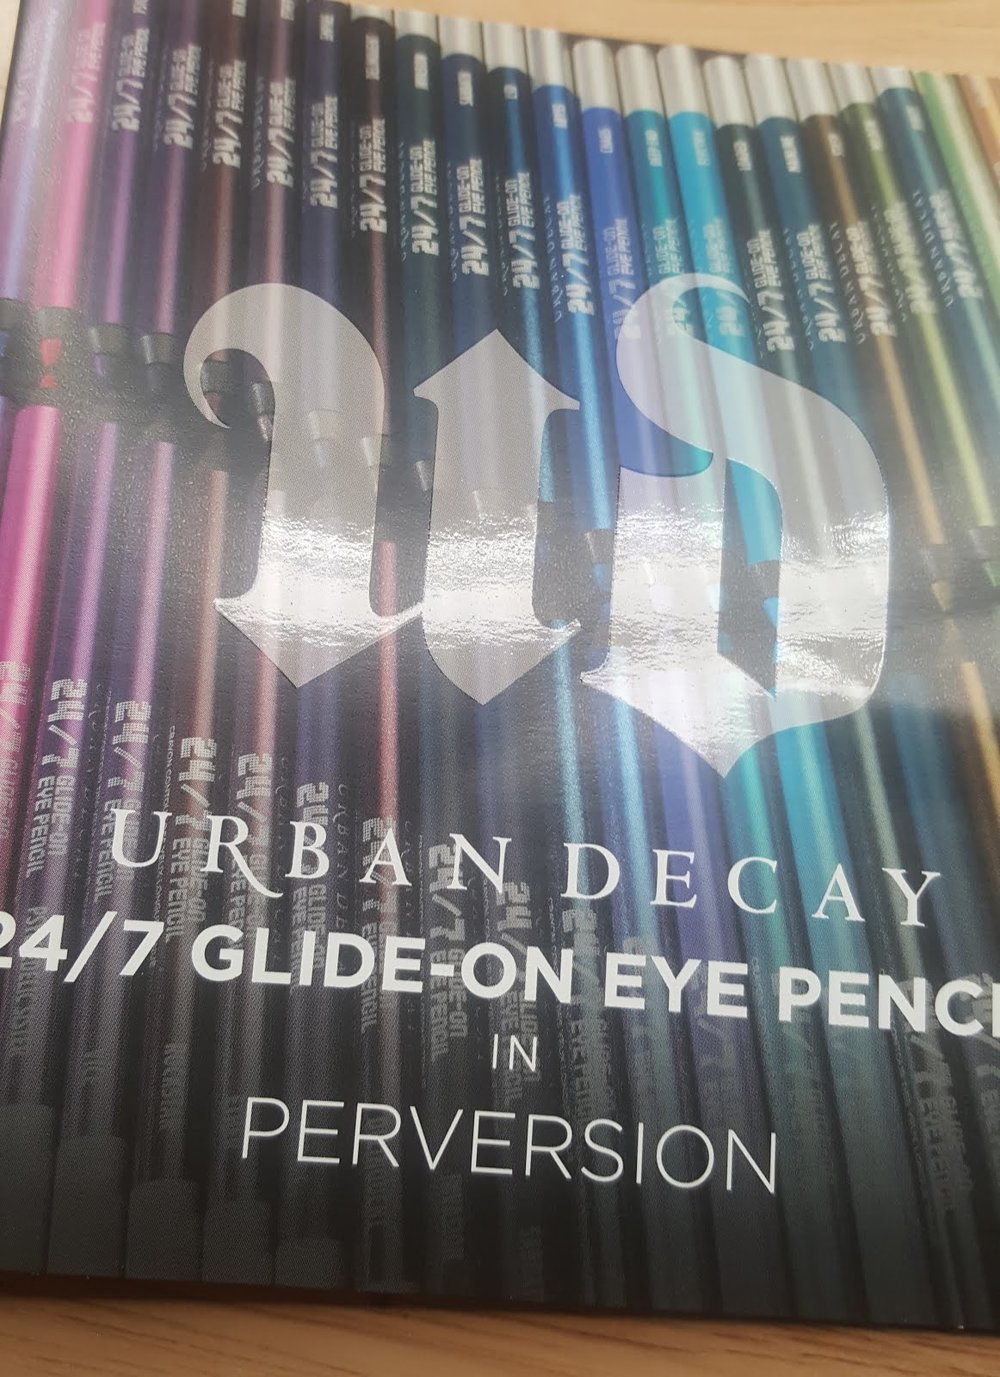 Urban Decay 24/7 Glide on Eye Pencil- Perversion-$20 -